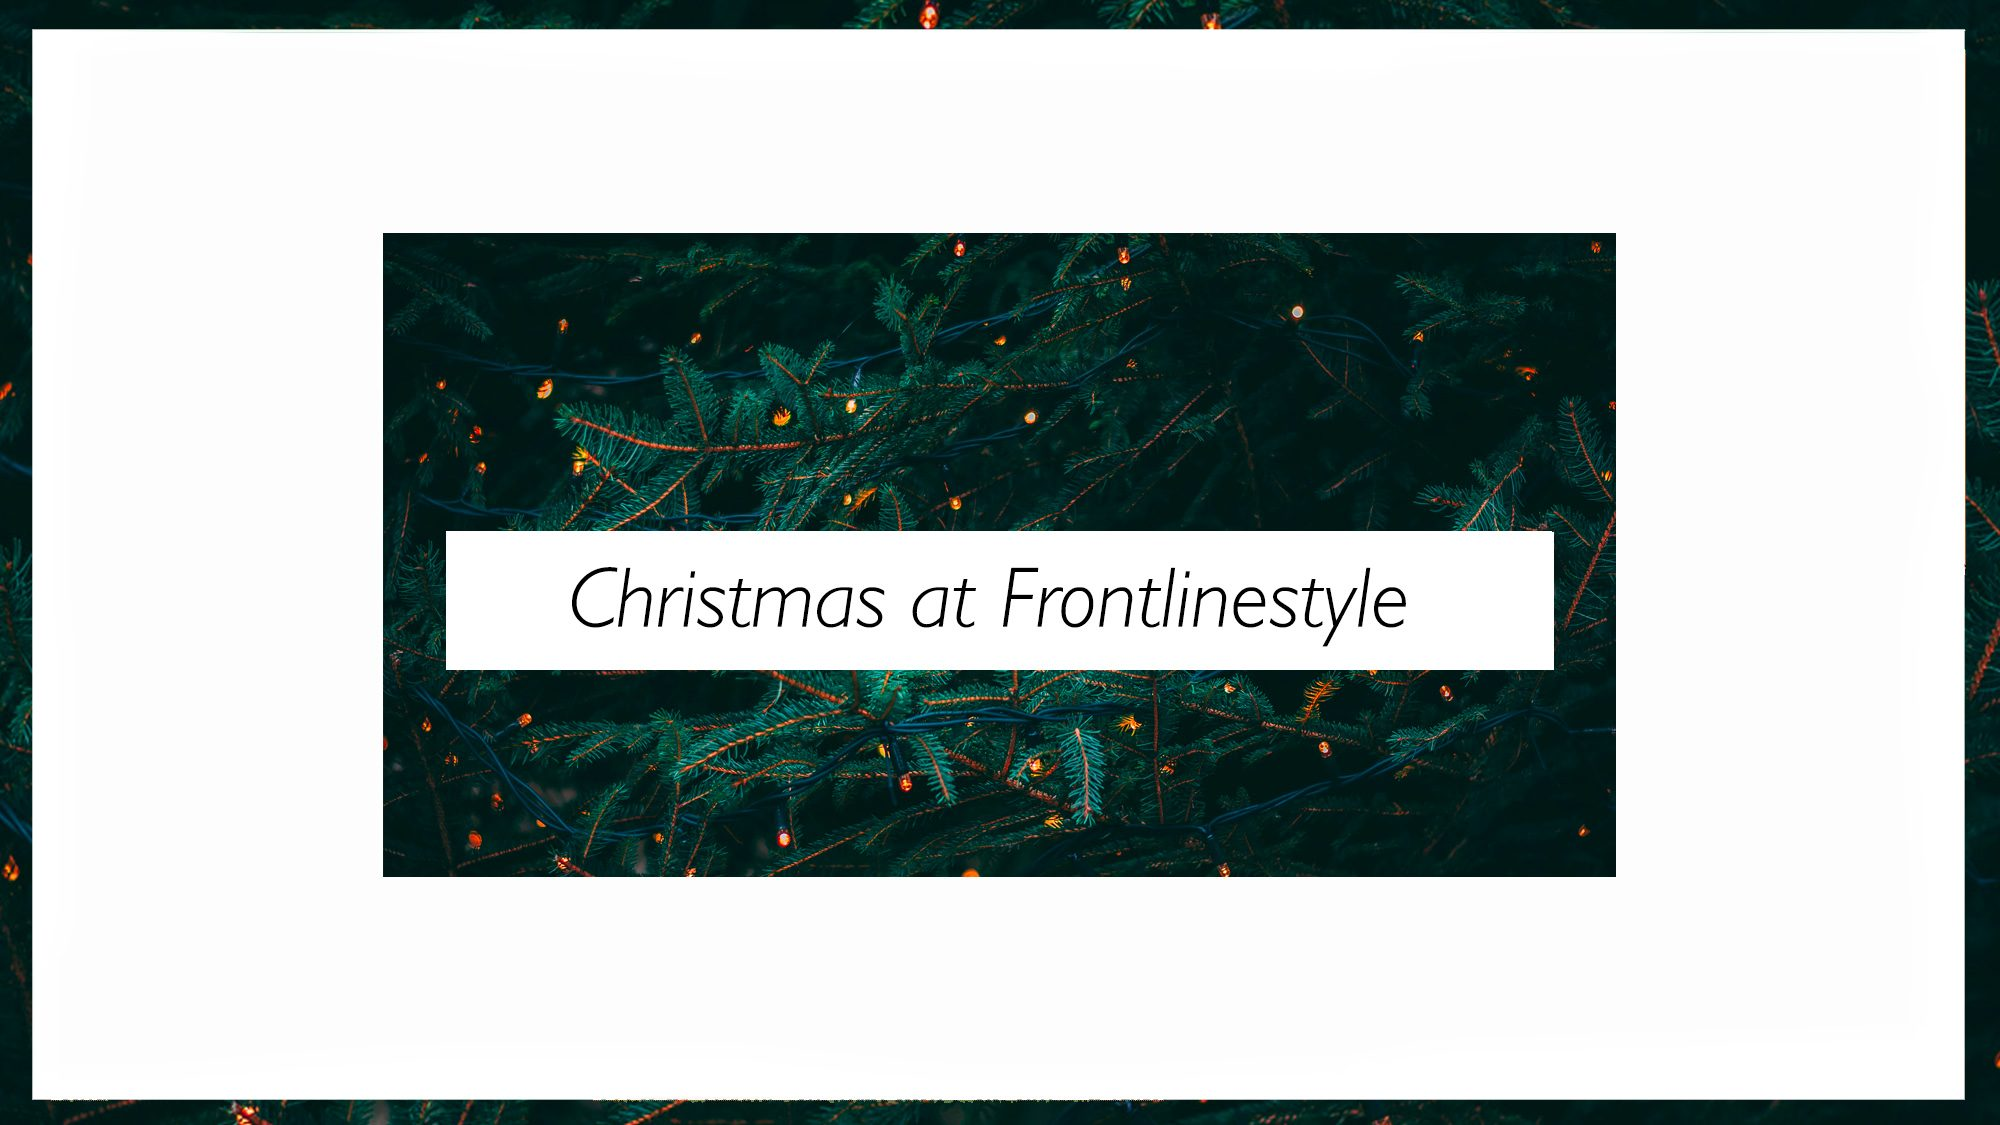 Christmas at Frontlinestyle Fir Tree Green Banner 2019